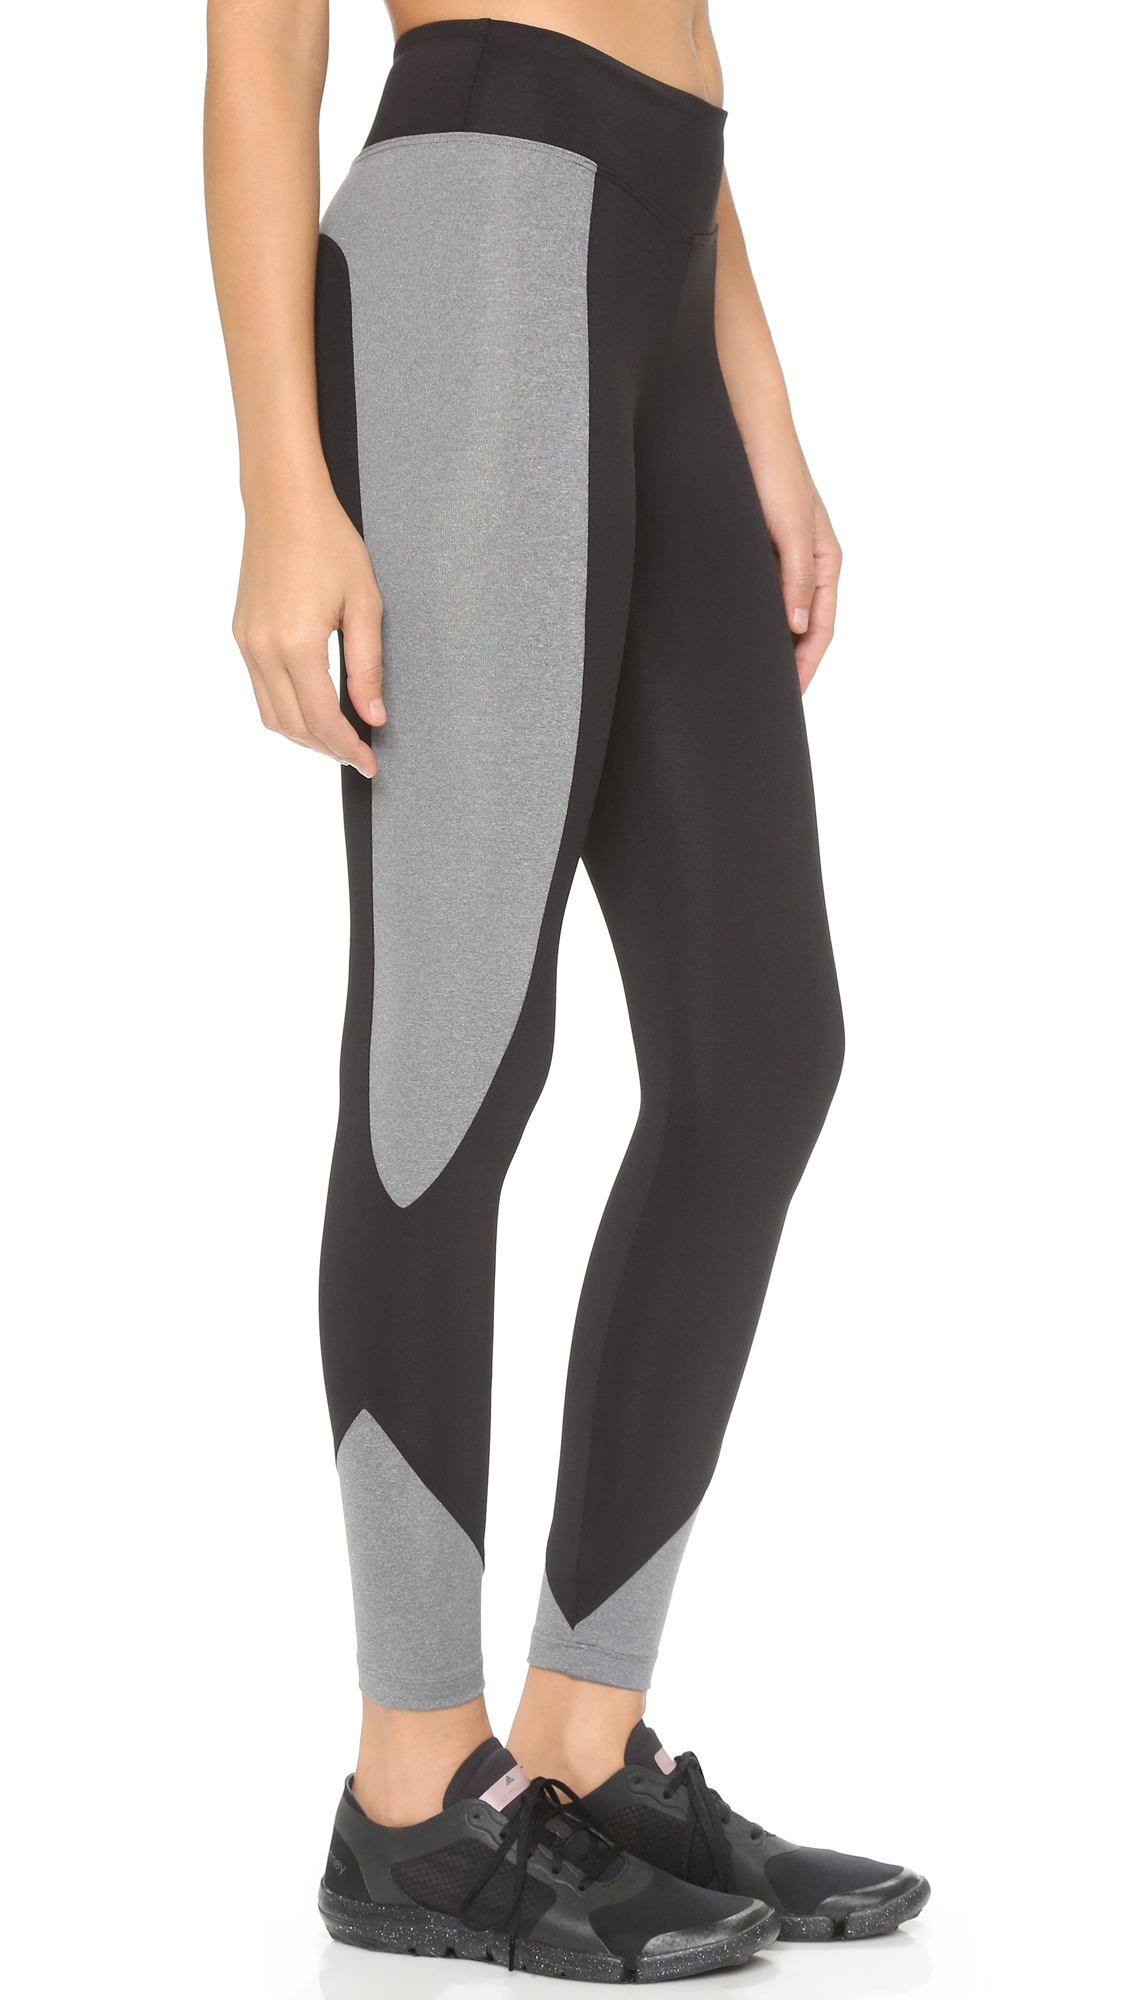 Koral activewear Makoto Curve Crop Leggings - Heather Grey/black ...